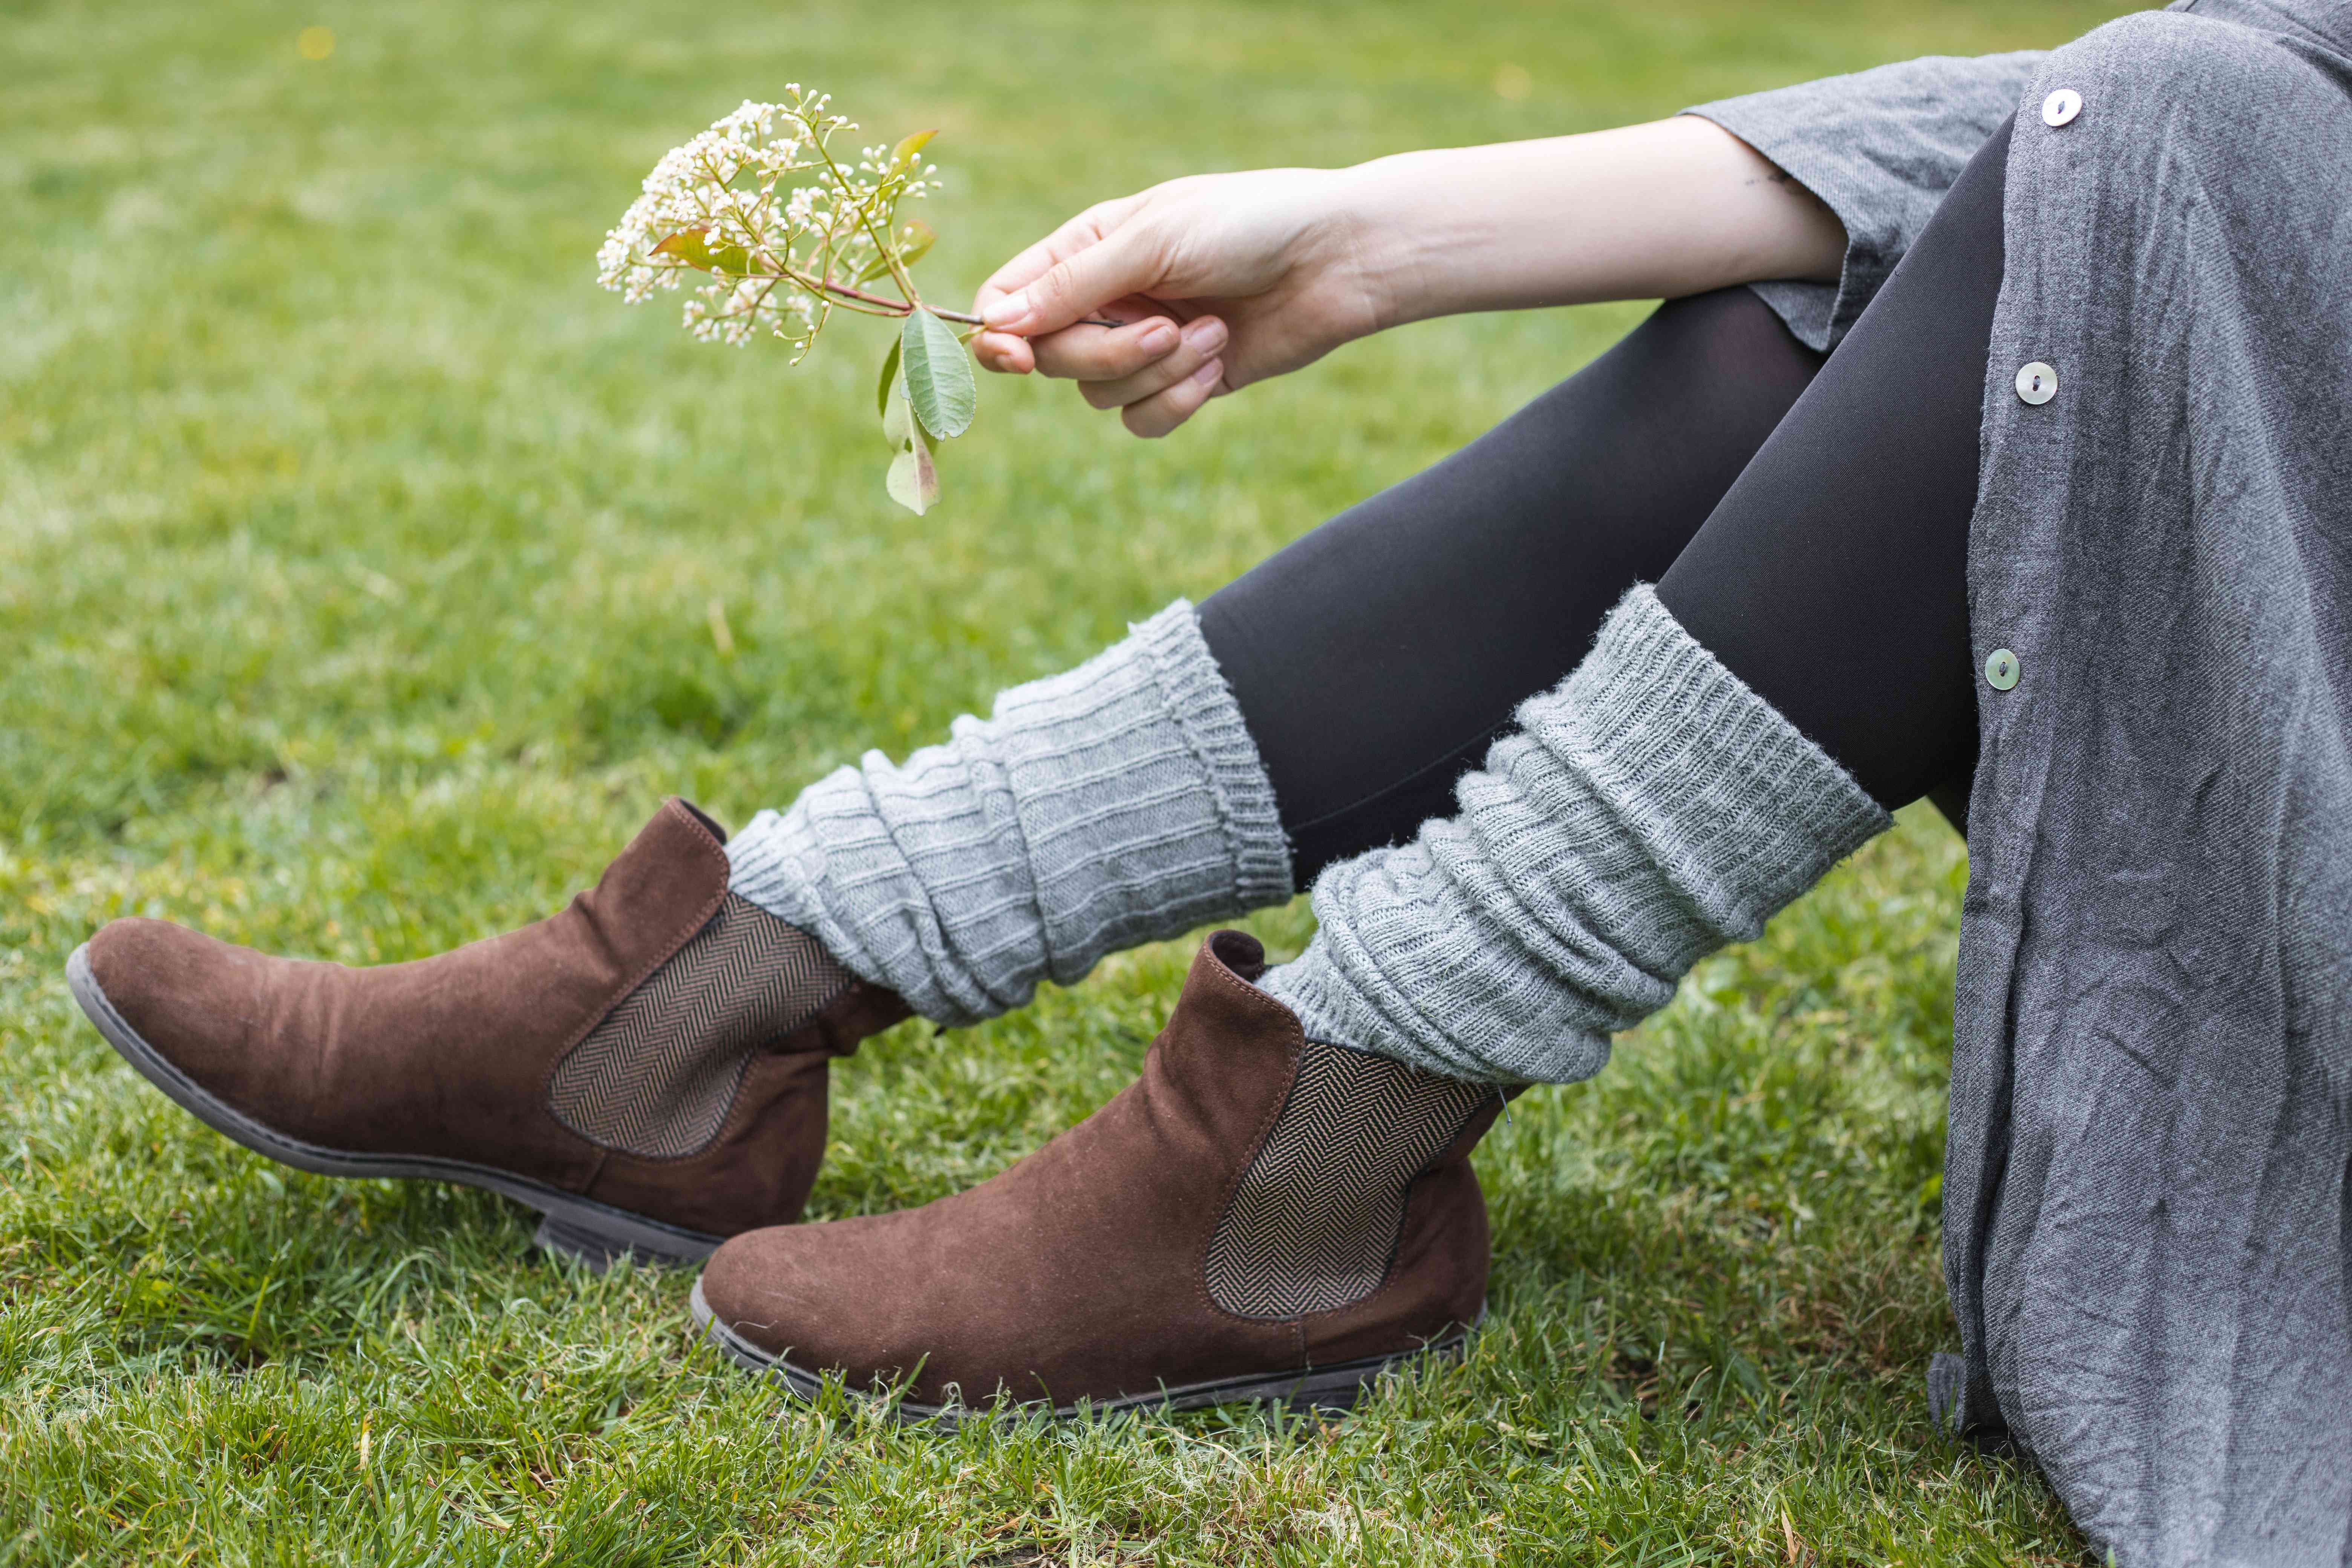 model lounges on grass wearing gray knitted boot toppers and holding sprig of flower